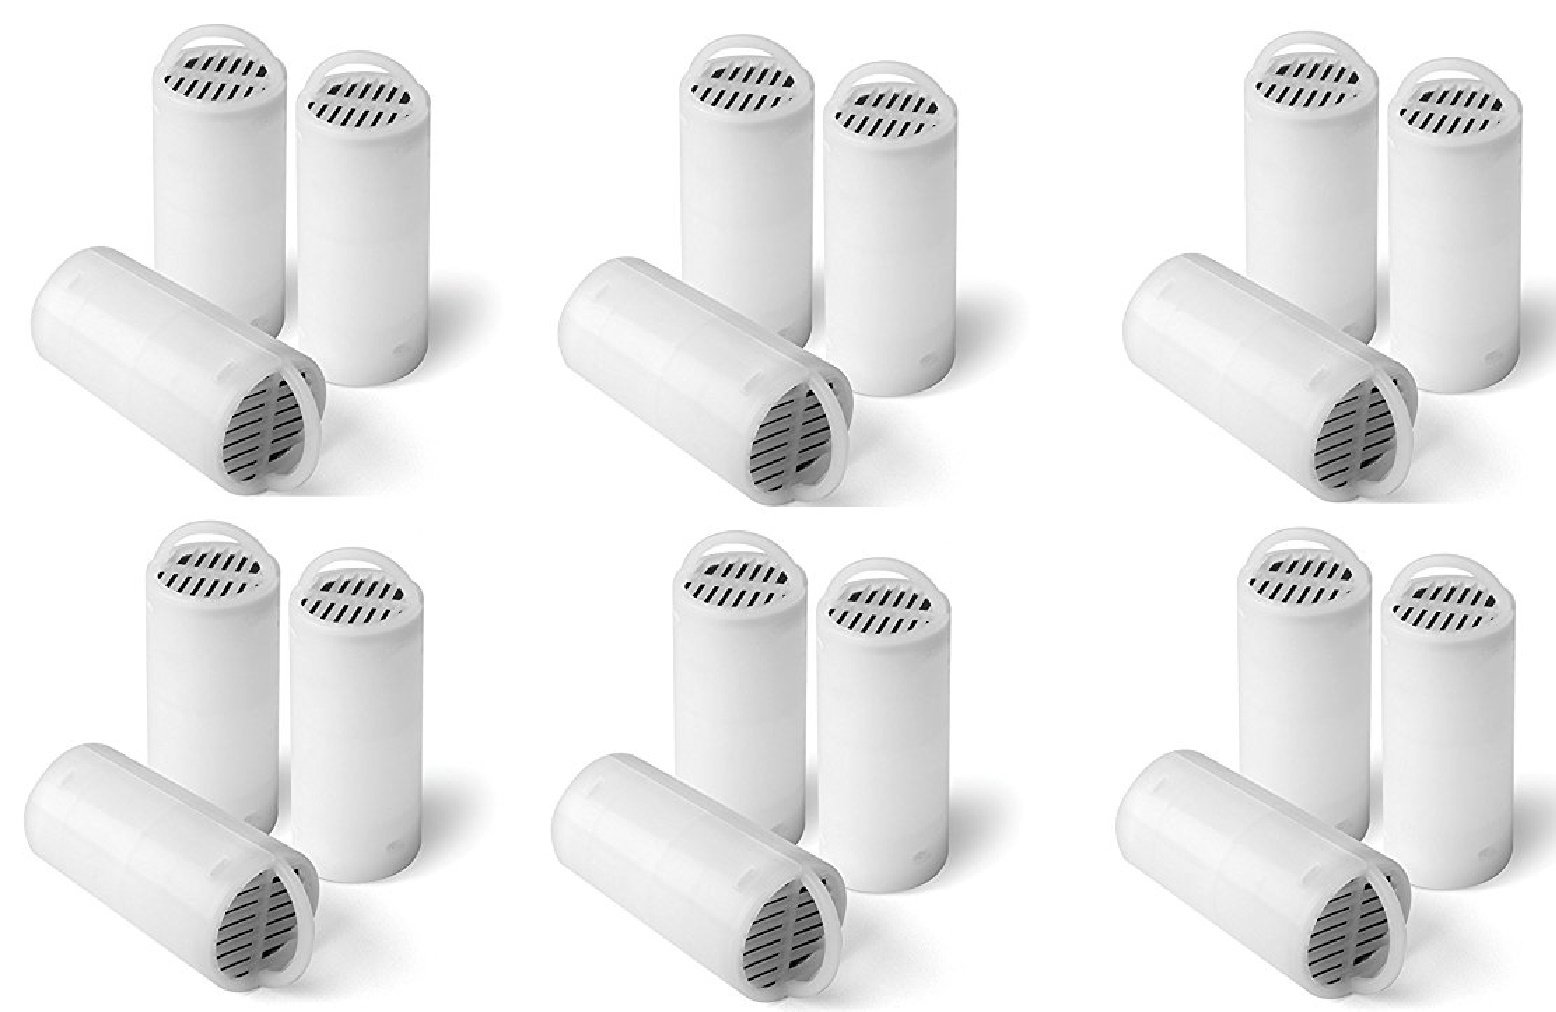 18 Count - PetSafe Drinkwell 360 Premium Carbon Filters (6 Packages with 3 Filters per Package)